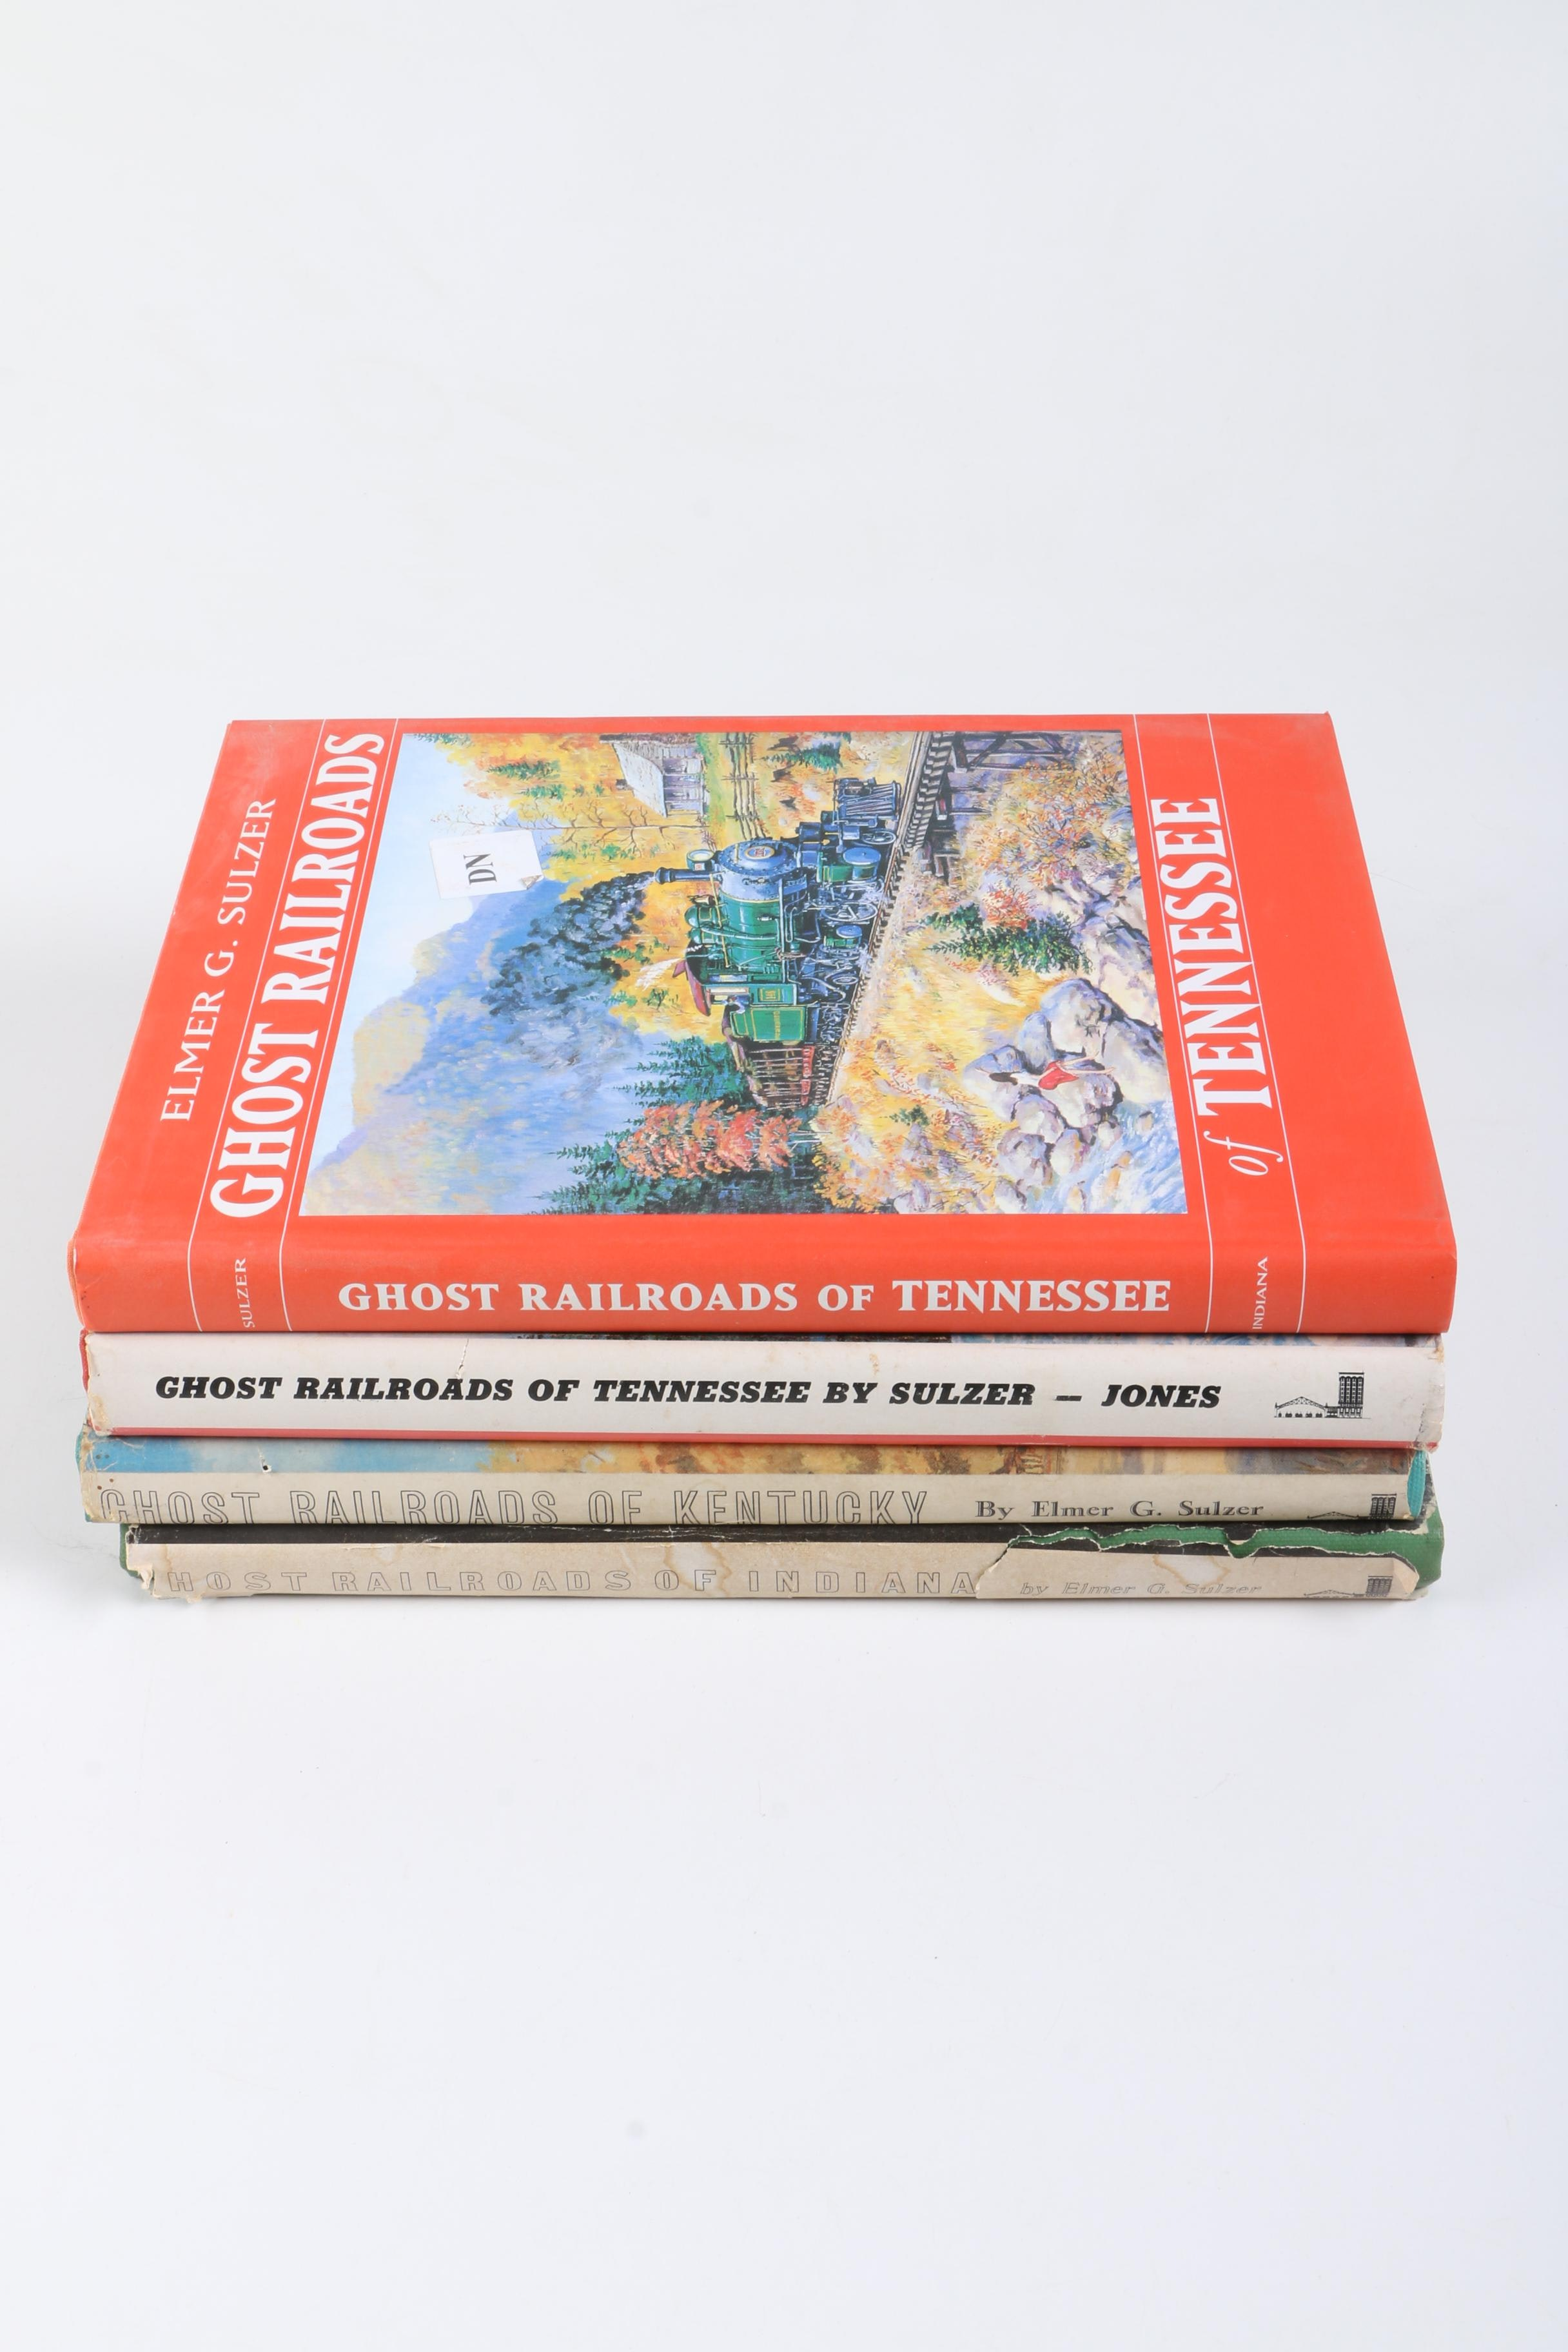 Assorted Hardcover Books on Trains by Elmer G. Sulzer